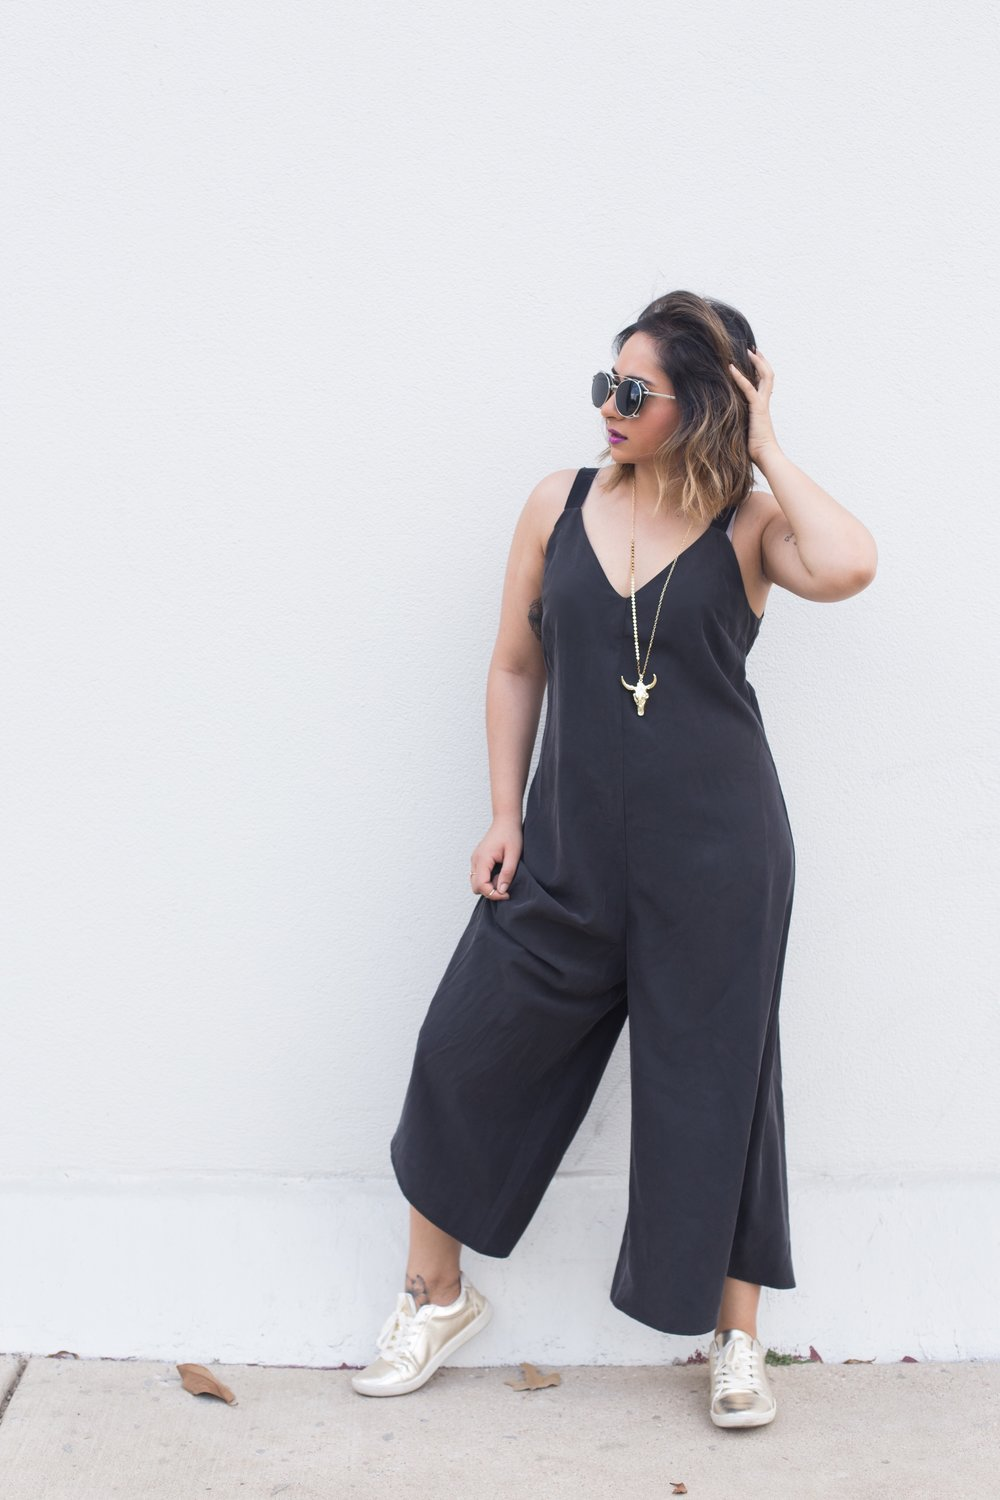 ASOS Black Culottes Jumpsuit | Zara Gold Sneakers